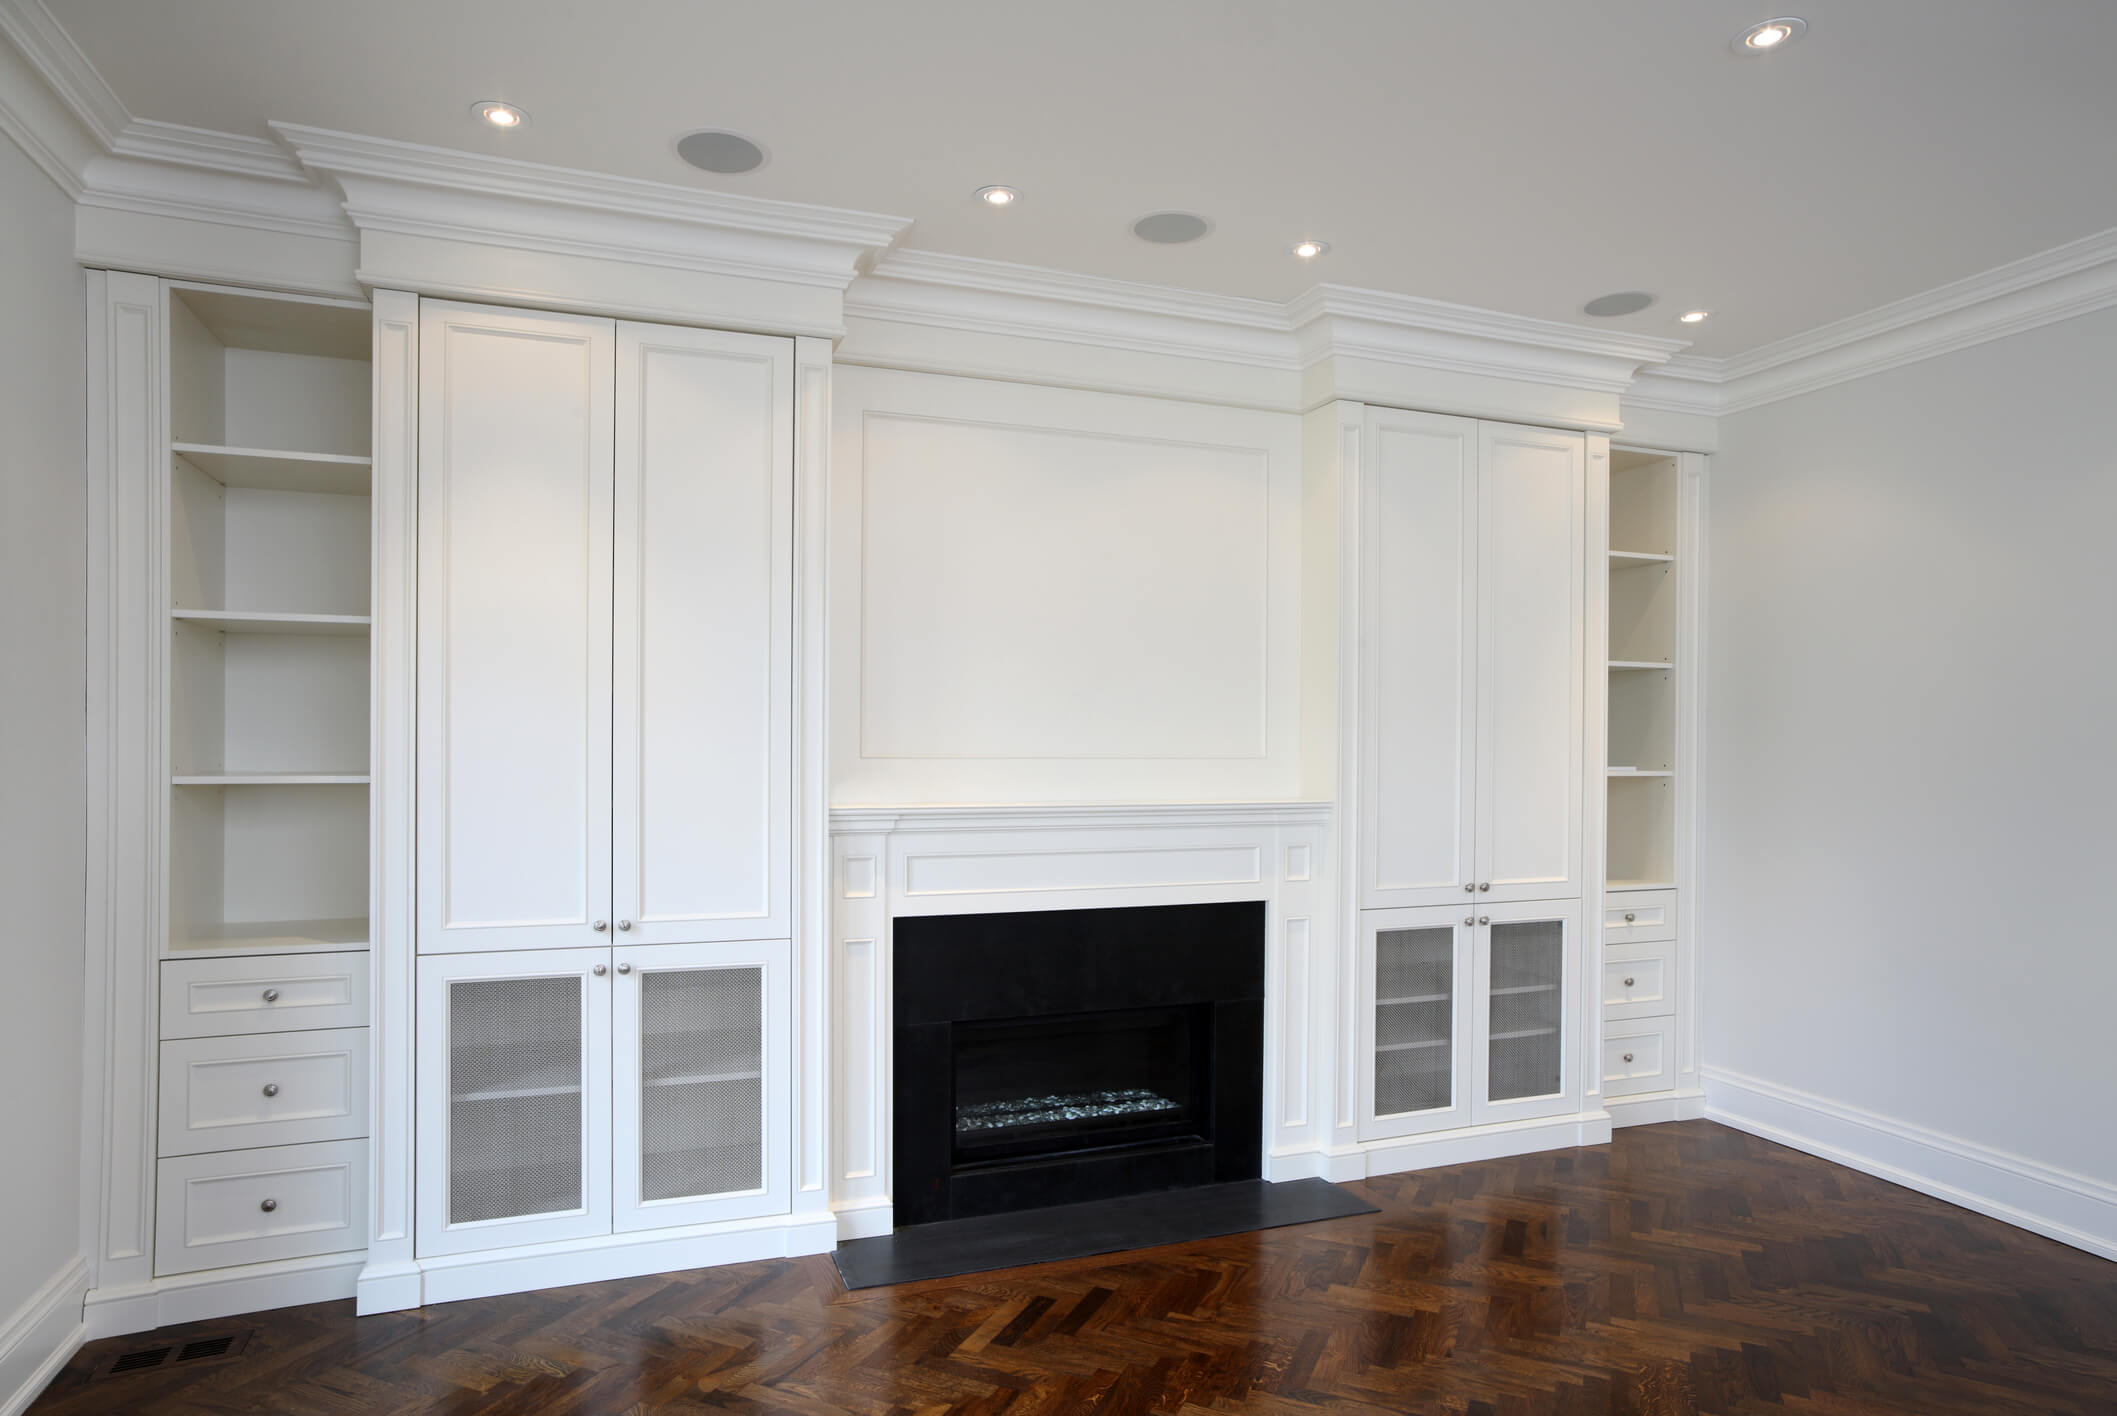 Elegant Bespoke Living, Bespoke Fitted Furniture, Cupboards, Shelf's, Drawers,